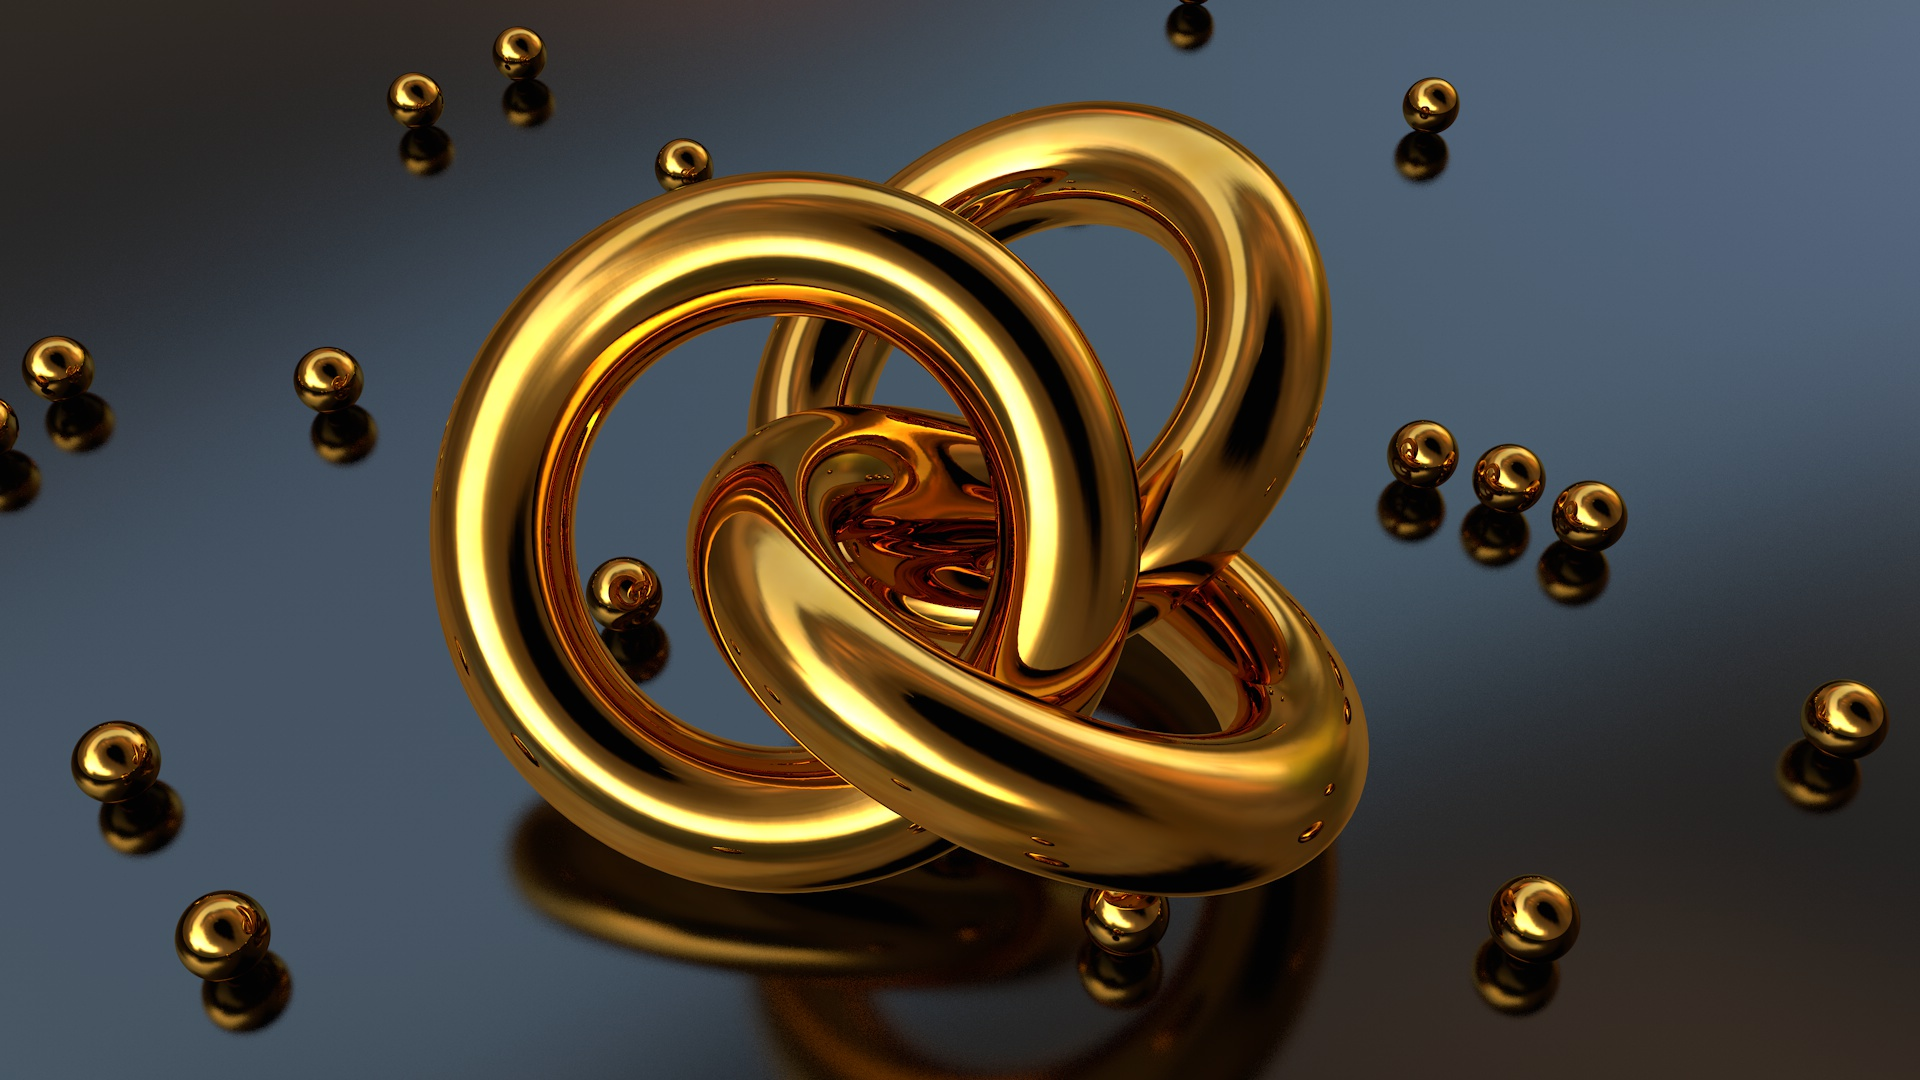 Cinema 4D - Ultra Realistic Gold Material Tutorial - Fattu